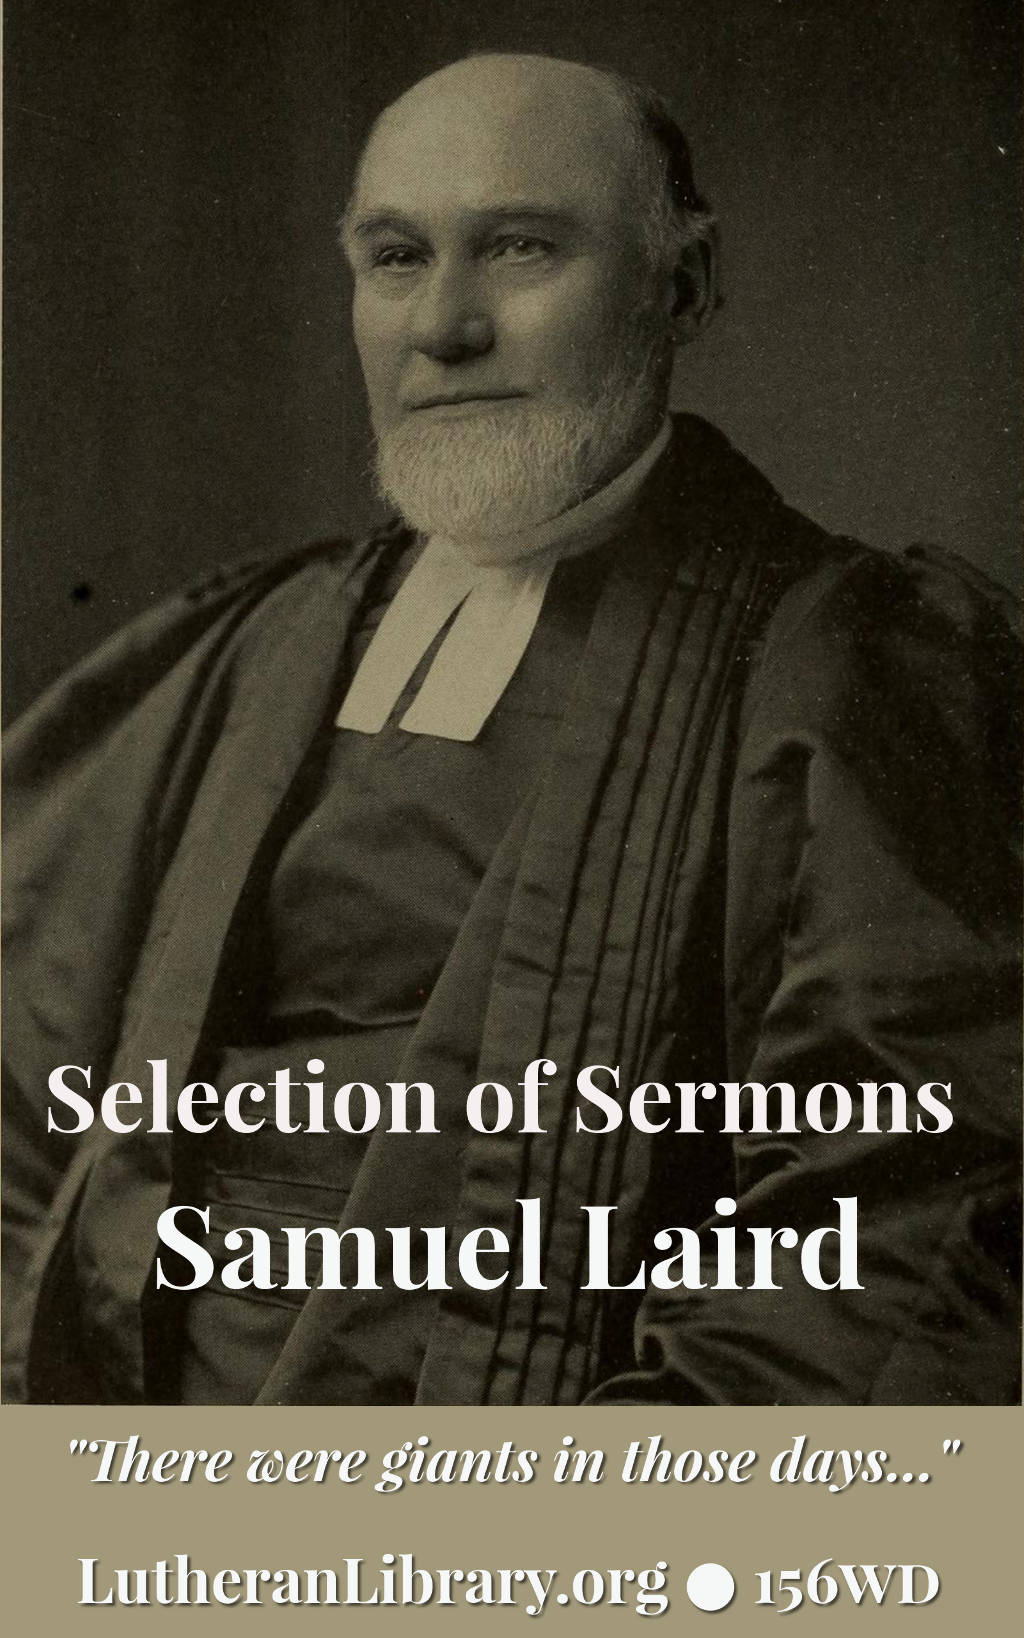 Selection of Sermons by Samuel Laird